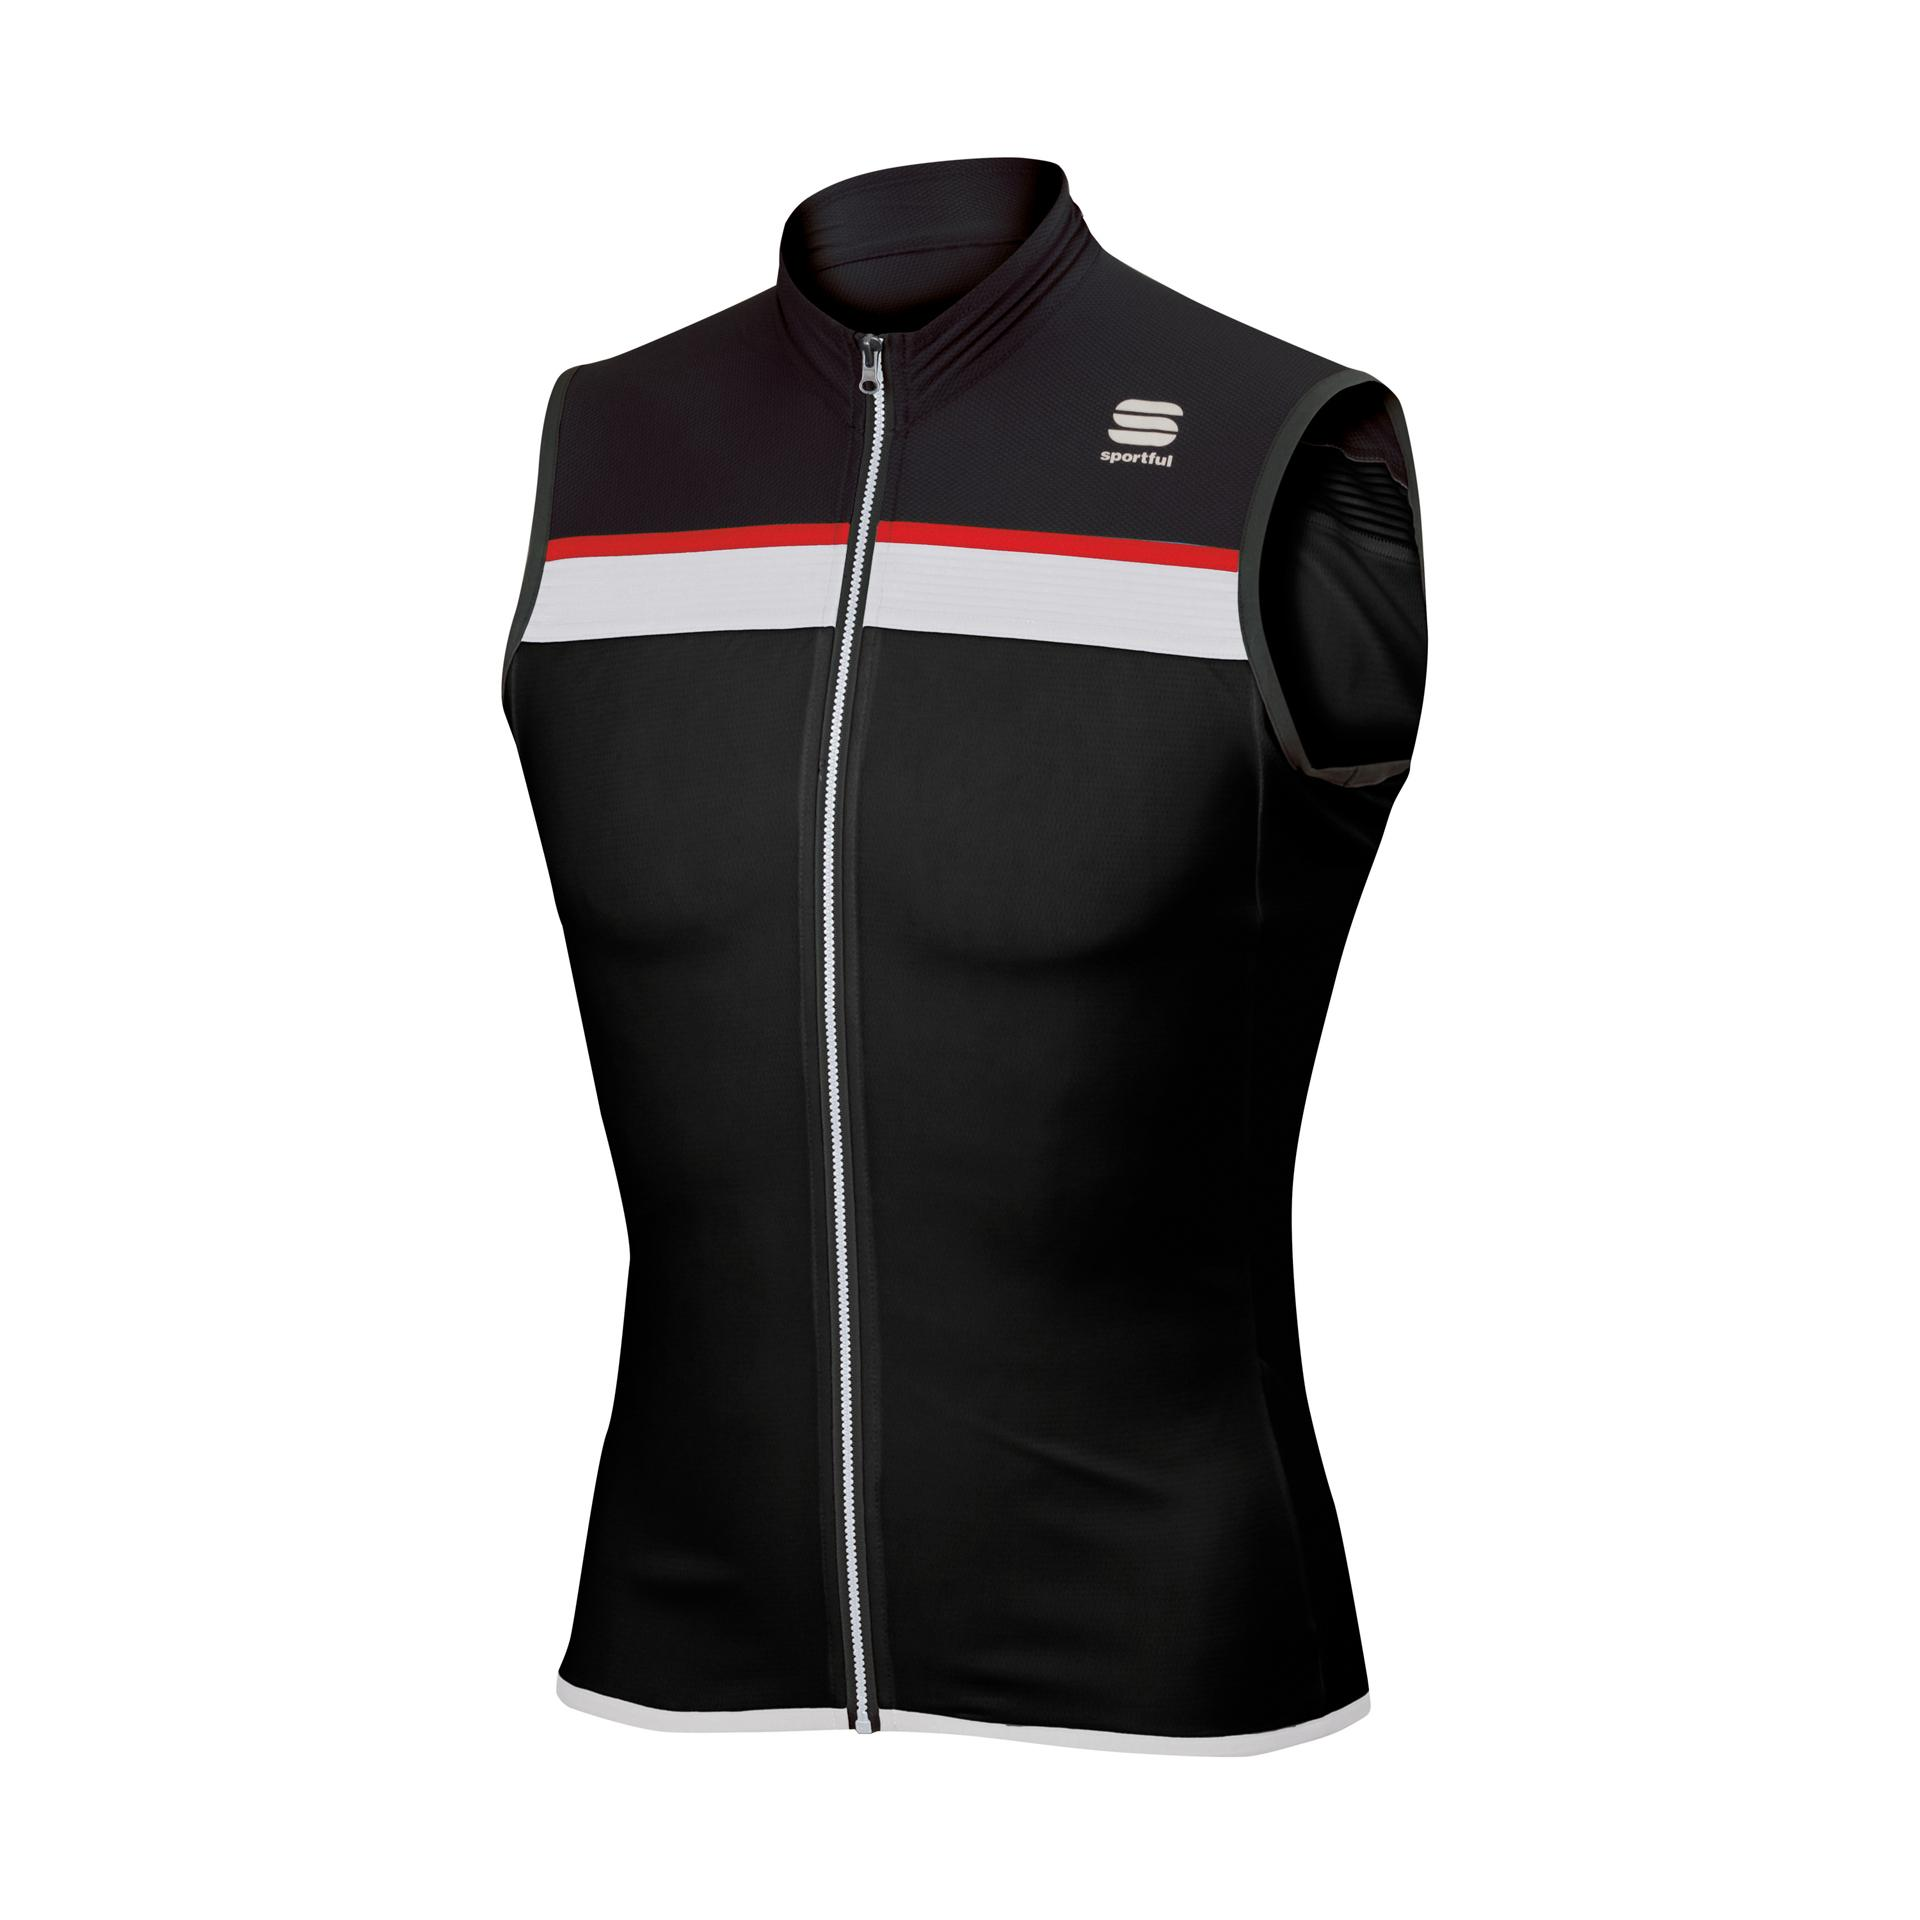 Afbeelding Sportful Fietsshirt mouwloos Heren Zwart Wit / SF Pista Sleeveless-Black/White/Red